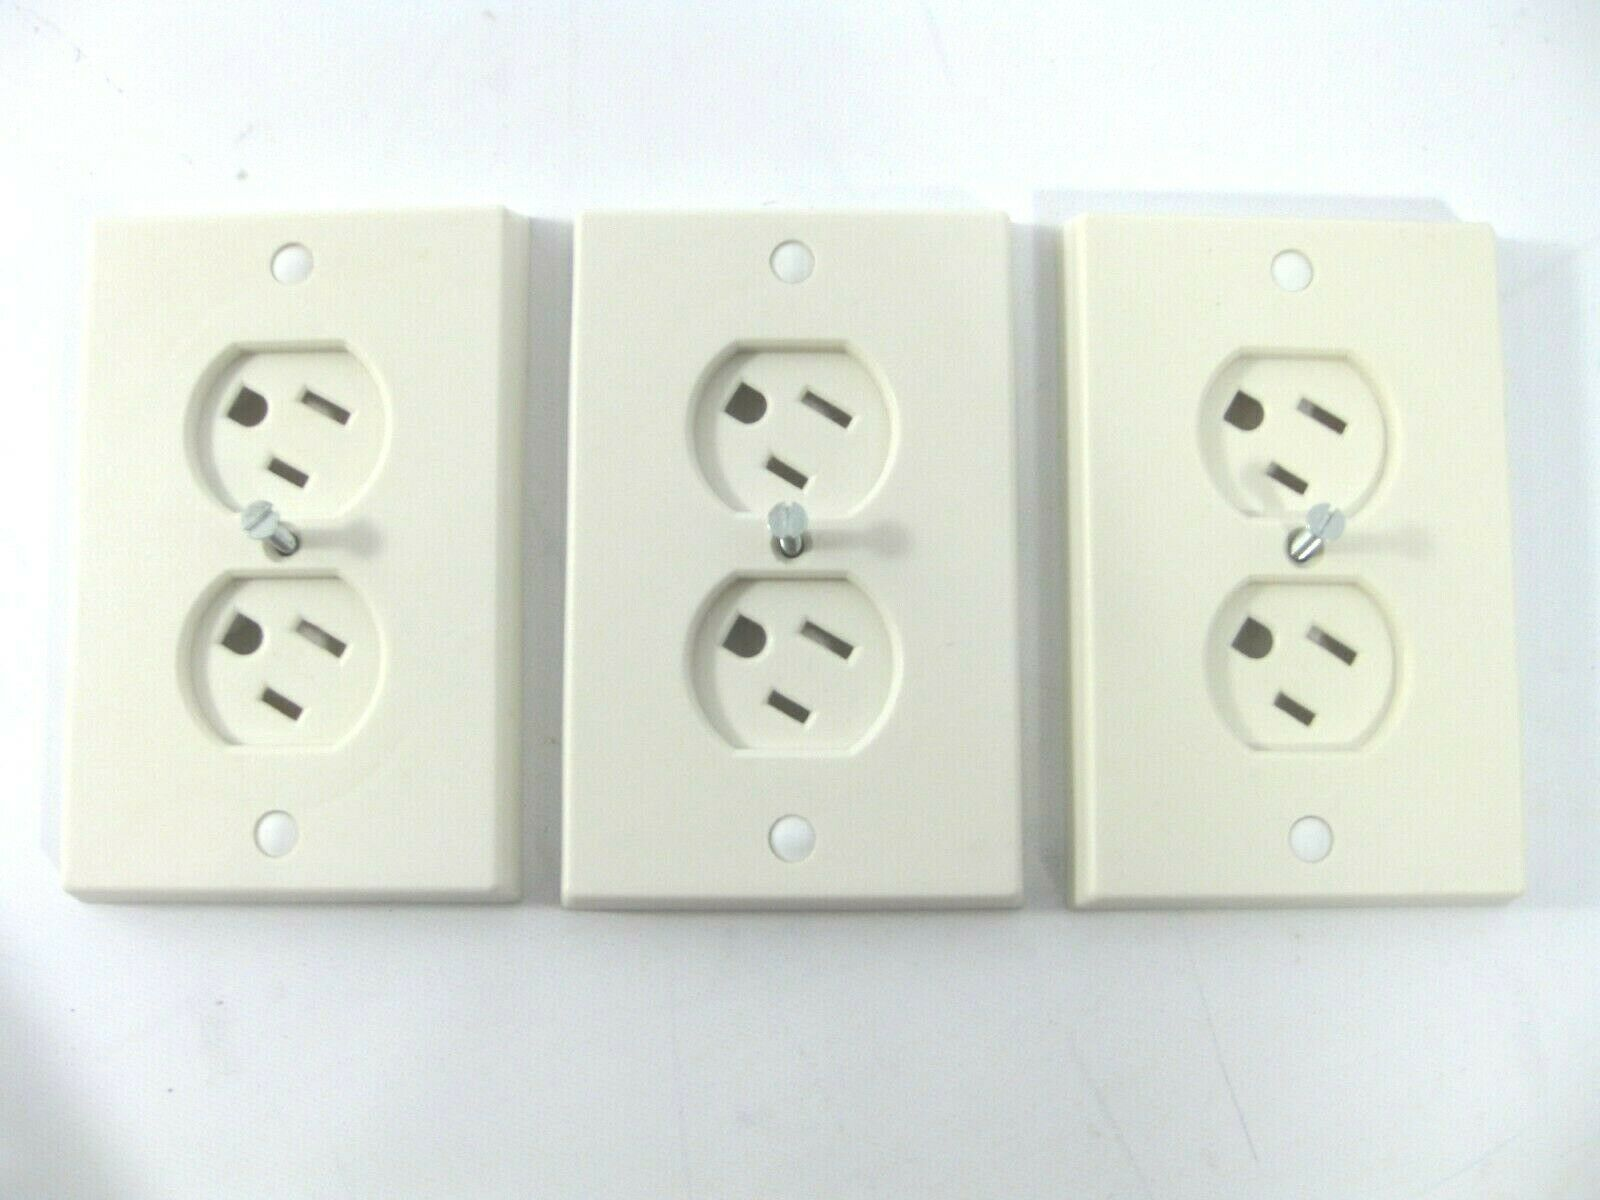 Lot of 3 Safety 1st Swivel Outlet Cover WC-1 Electrical Sockets Are Baby Proof  - $8.99